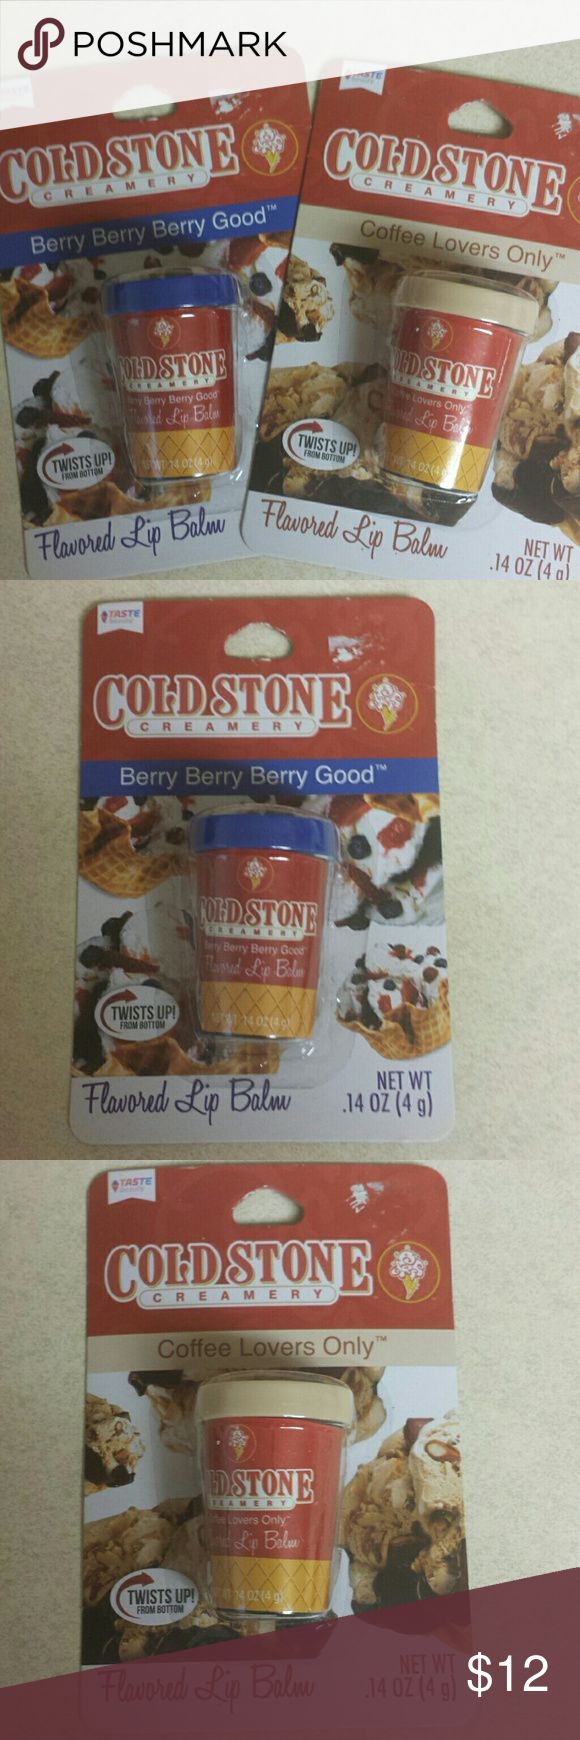 Cold stone Berry Berry & Coffee Lovers lip balm Brand new never opened, Berry Berry Berry Good & Coffee Lovers Only flavored lip balm Makeup Lip Balm & Gloss